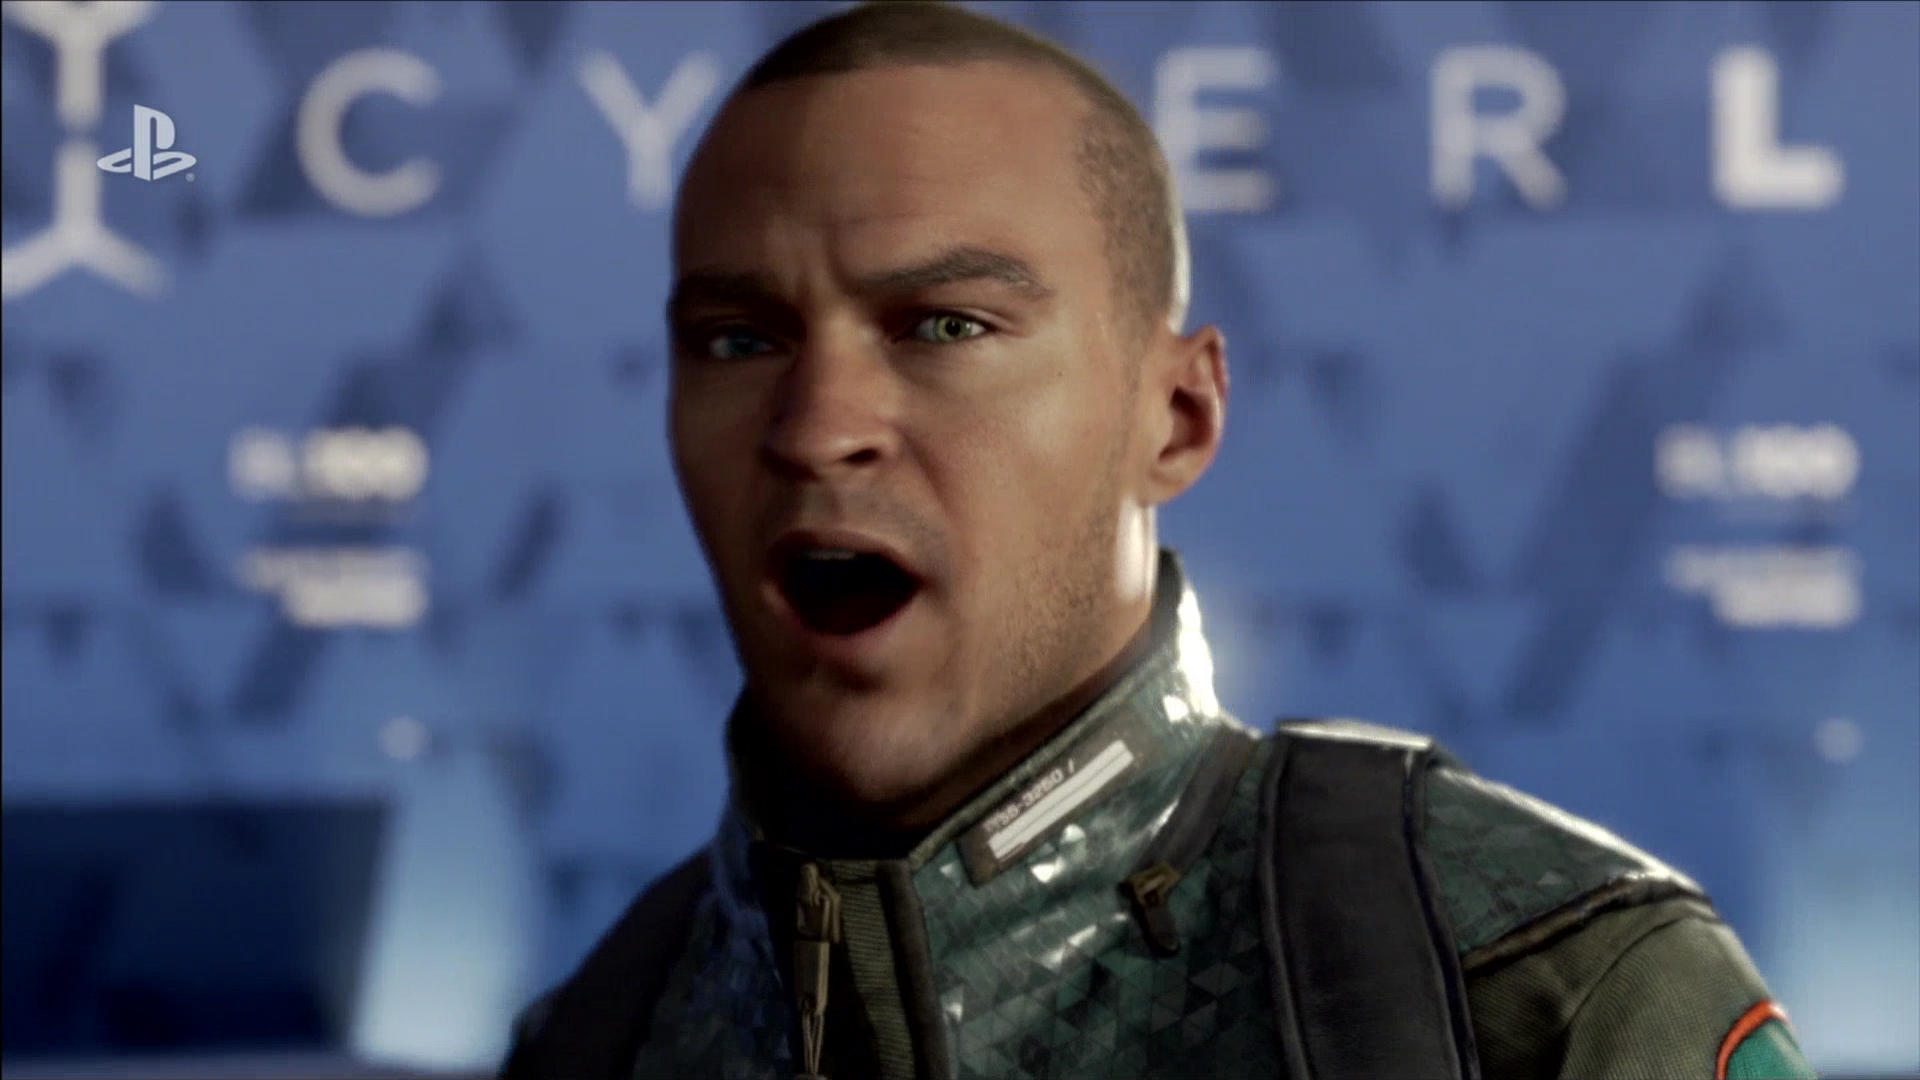 Dr. Avery is leading the robot revolution in Detroit: Become Human screenshot